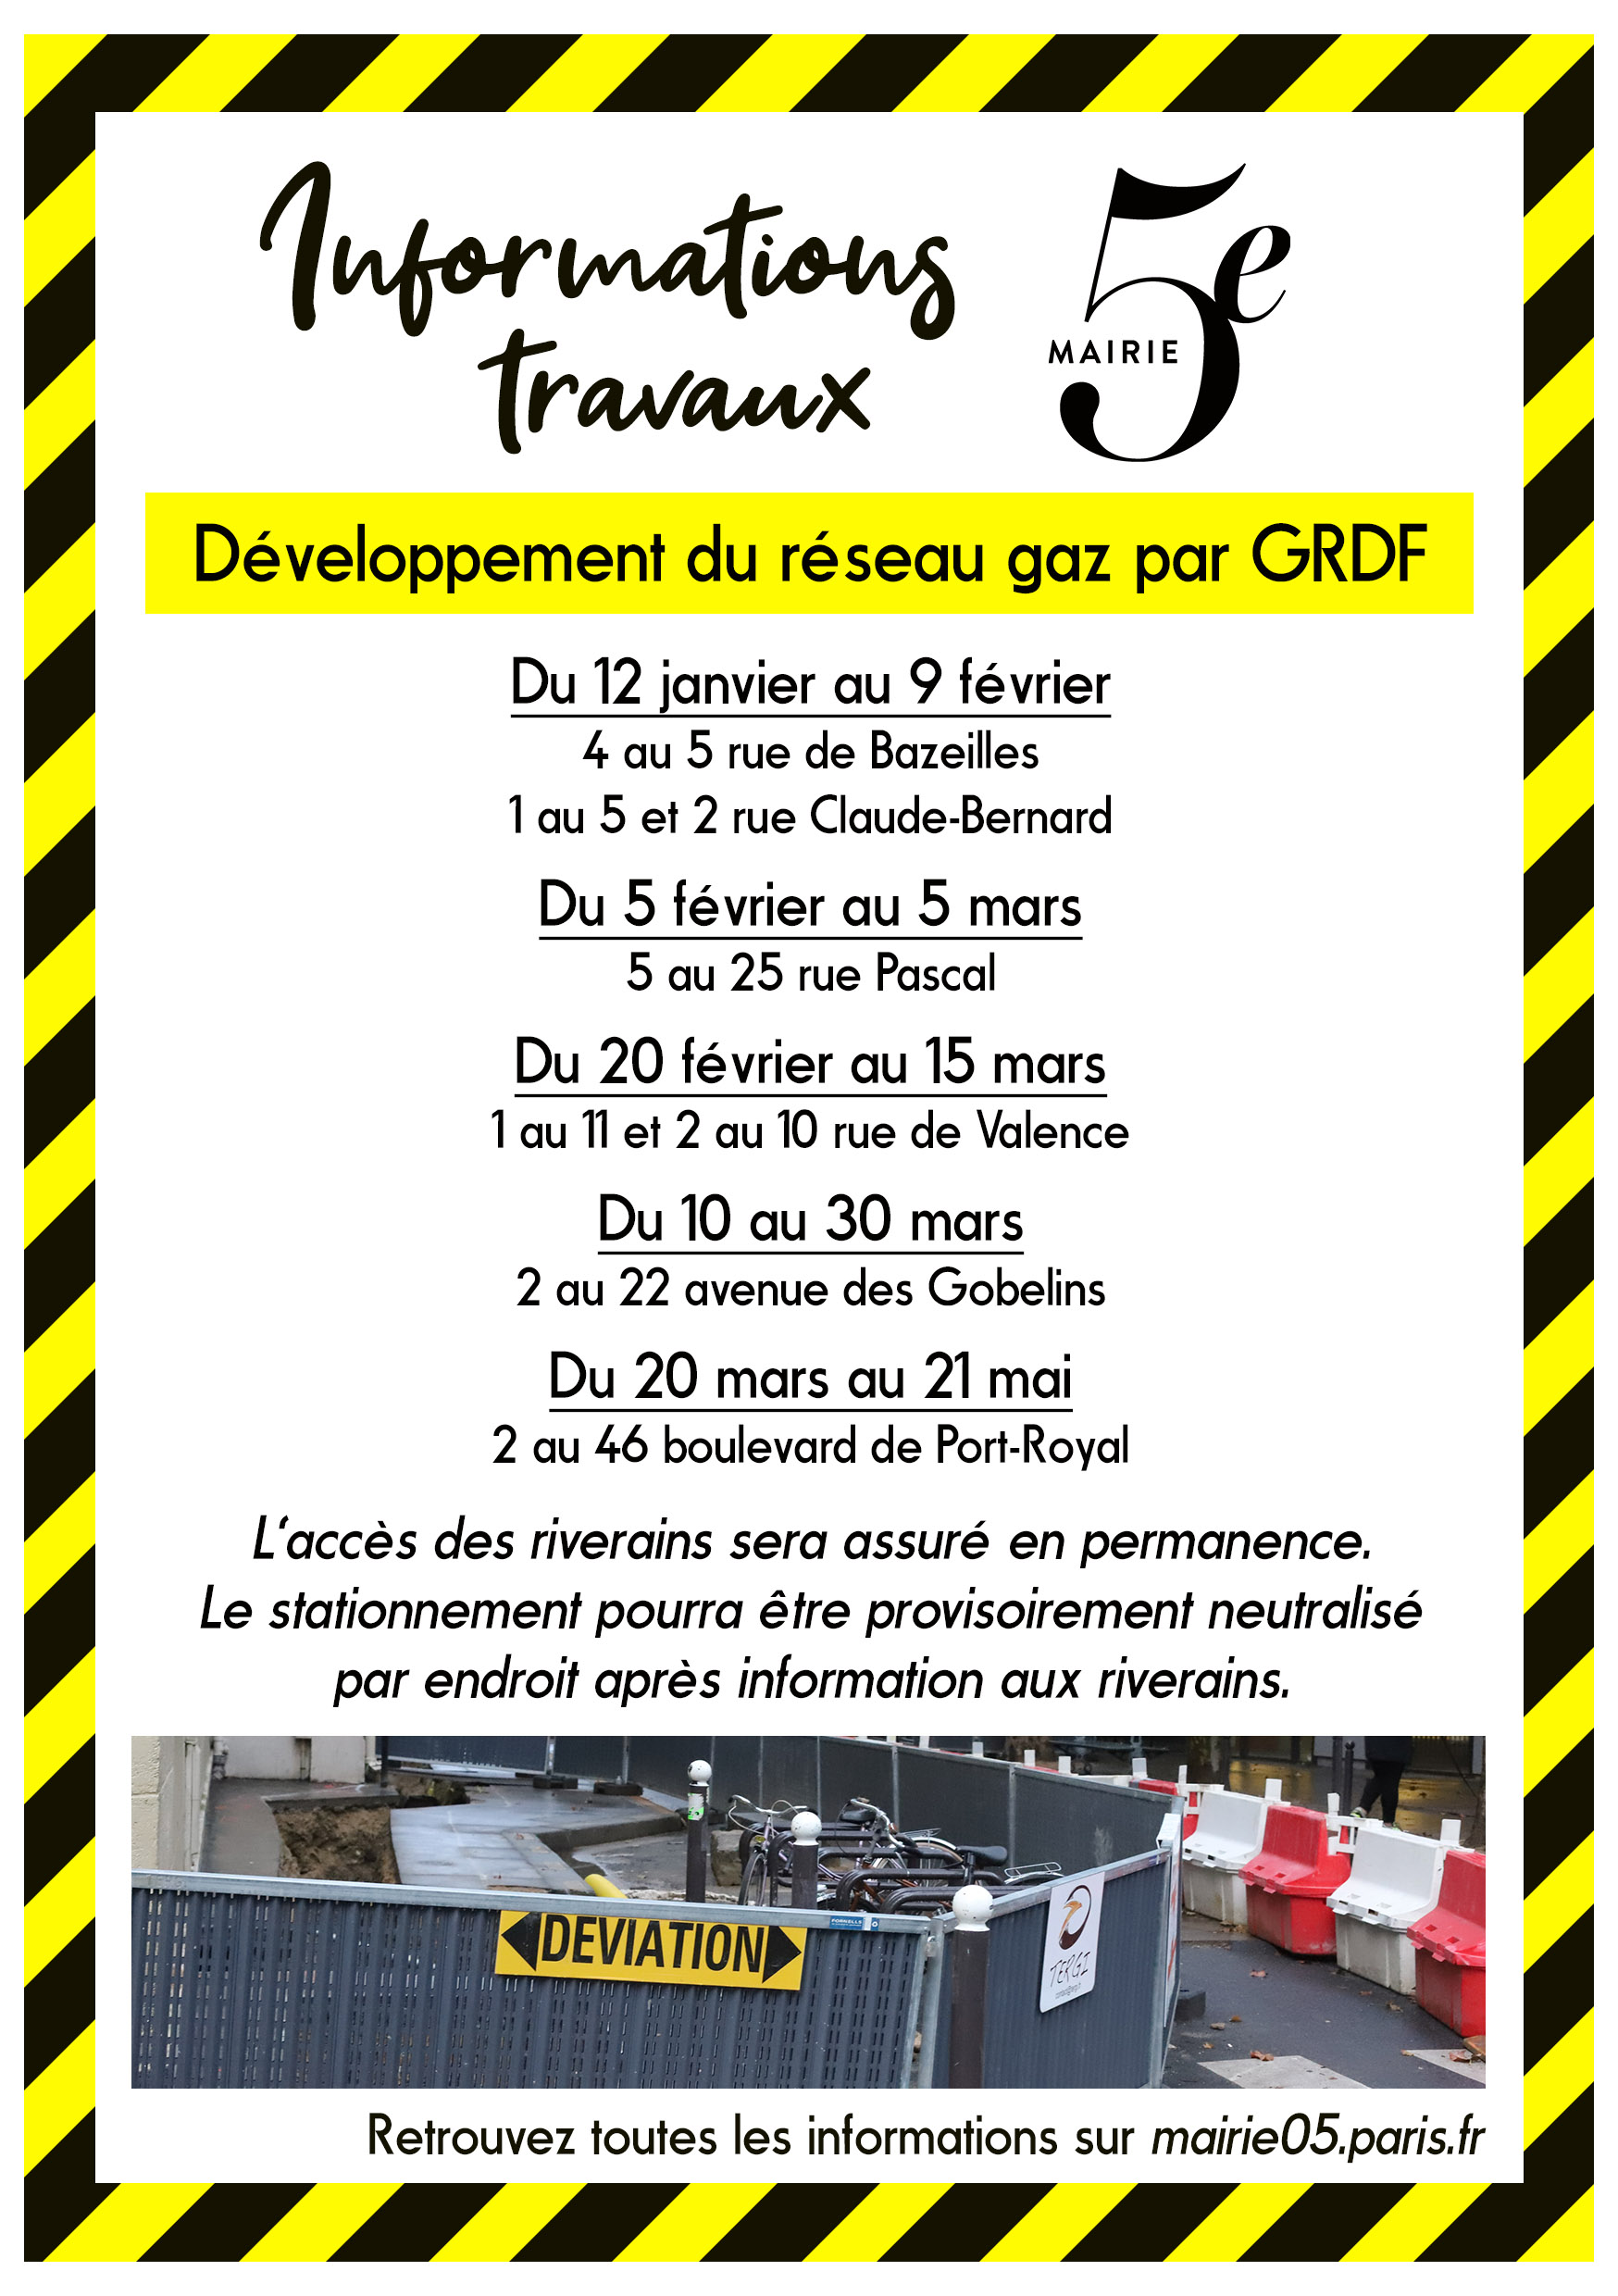 Travaux gaz naturel GRDF Paris5